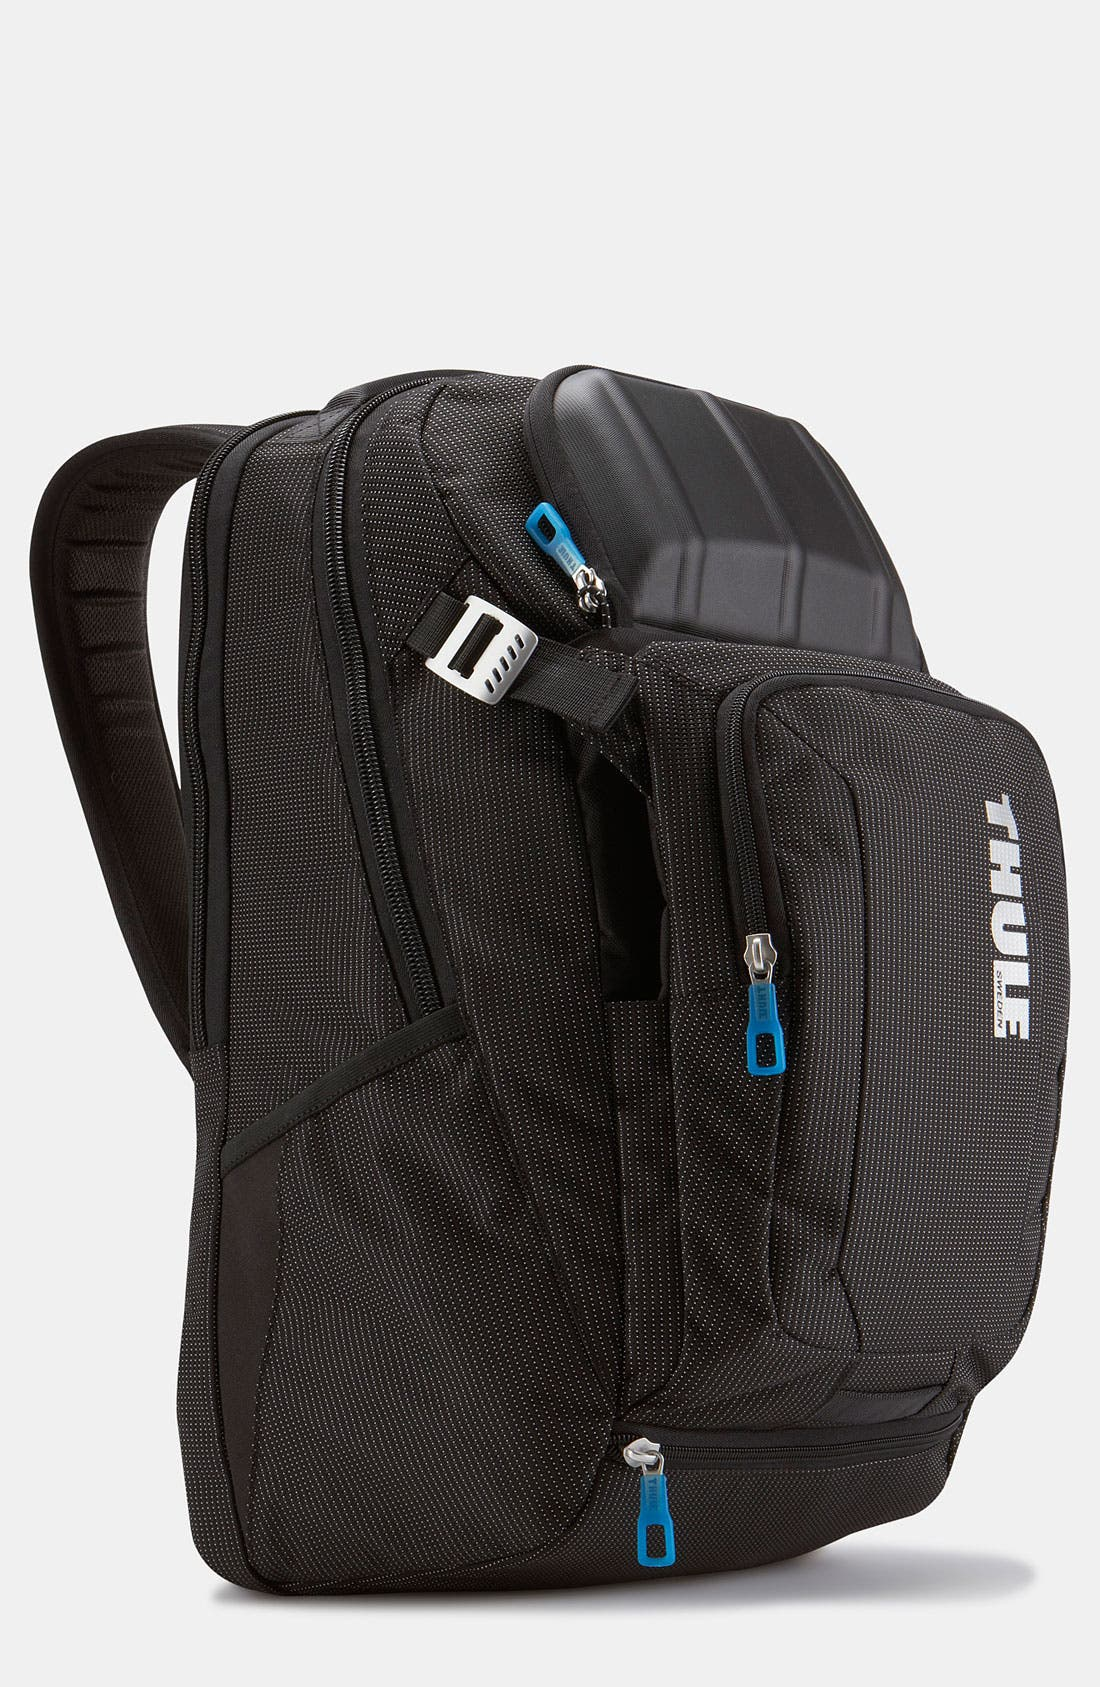 32-Liter Crossover Backpack,                         Main,                         color, Black